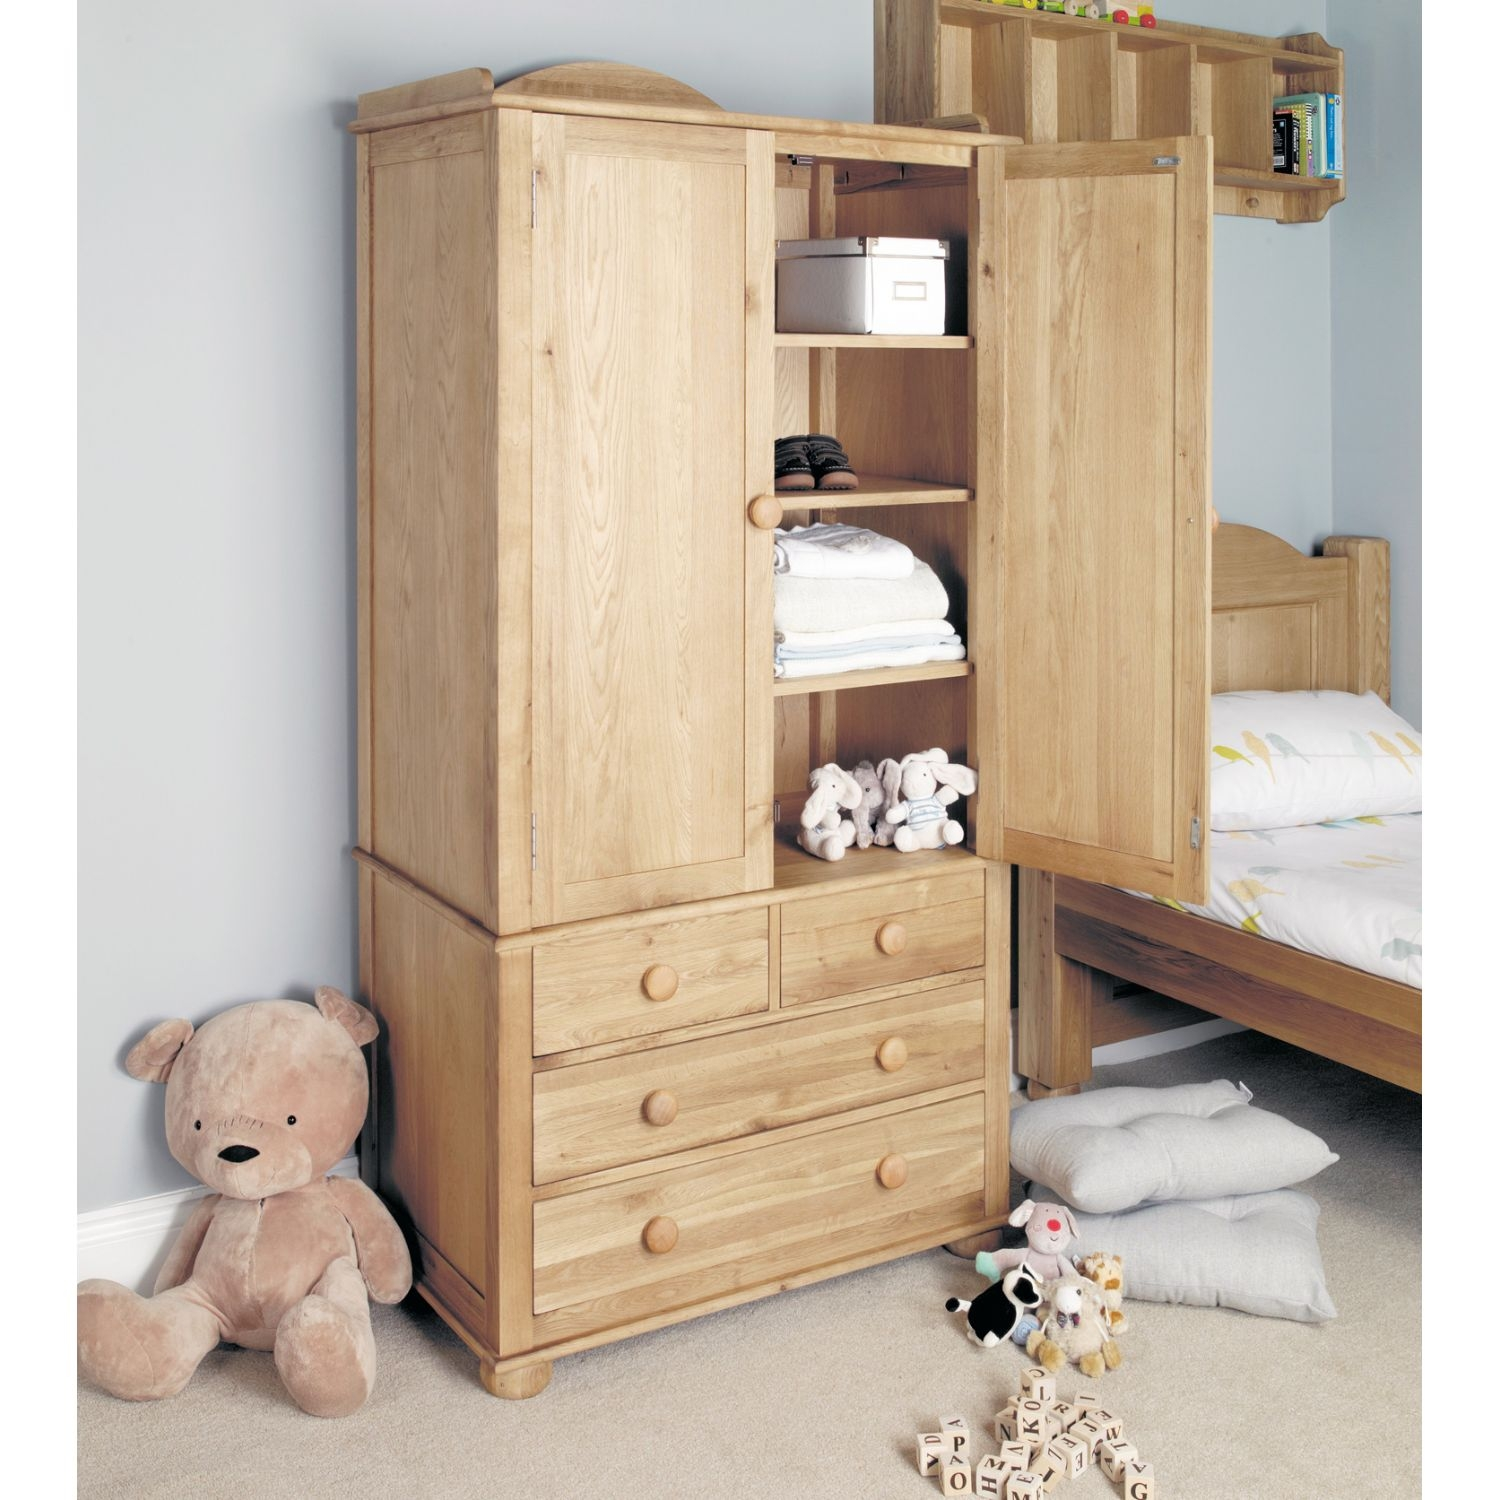 Childrens Wardrobes With Shelves Awesome Interior With Wardrobes With Shelves And Drawers (Image 6 of 15)